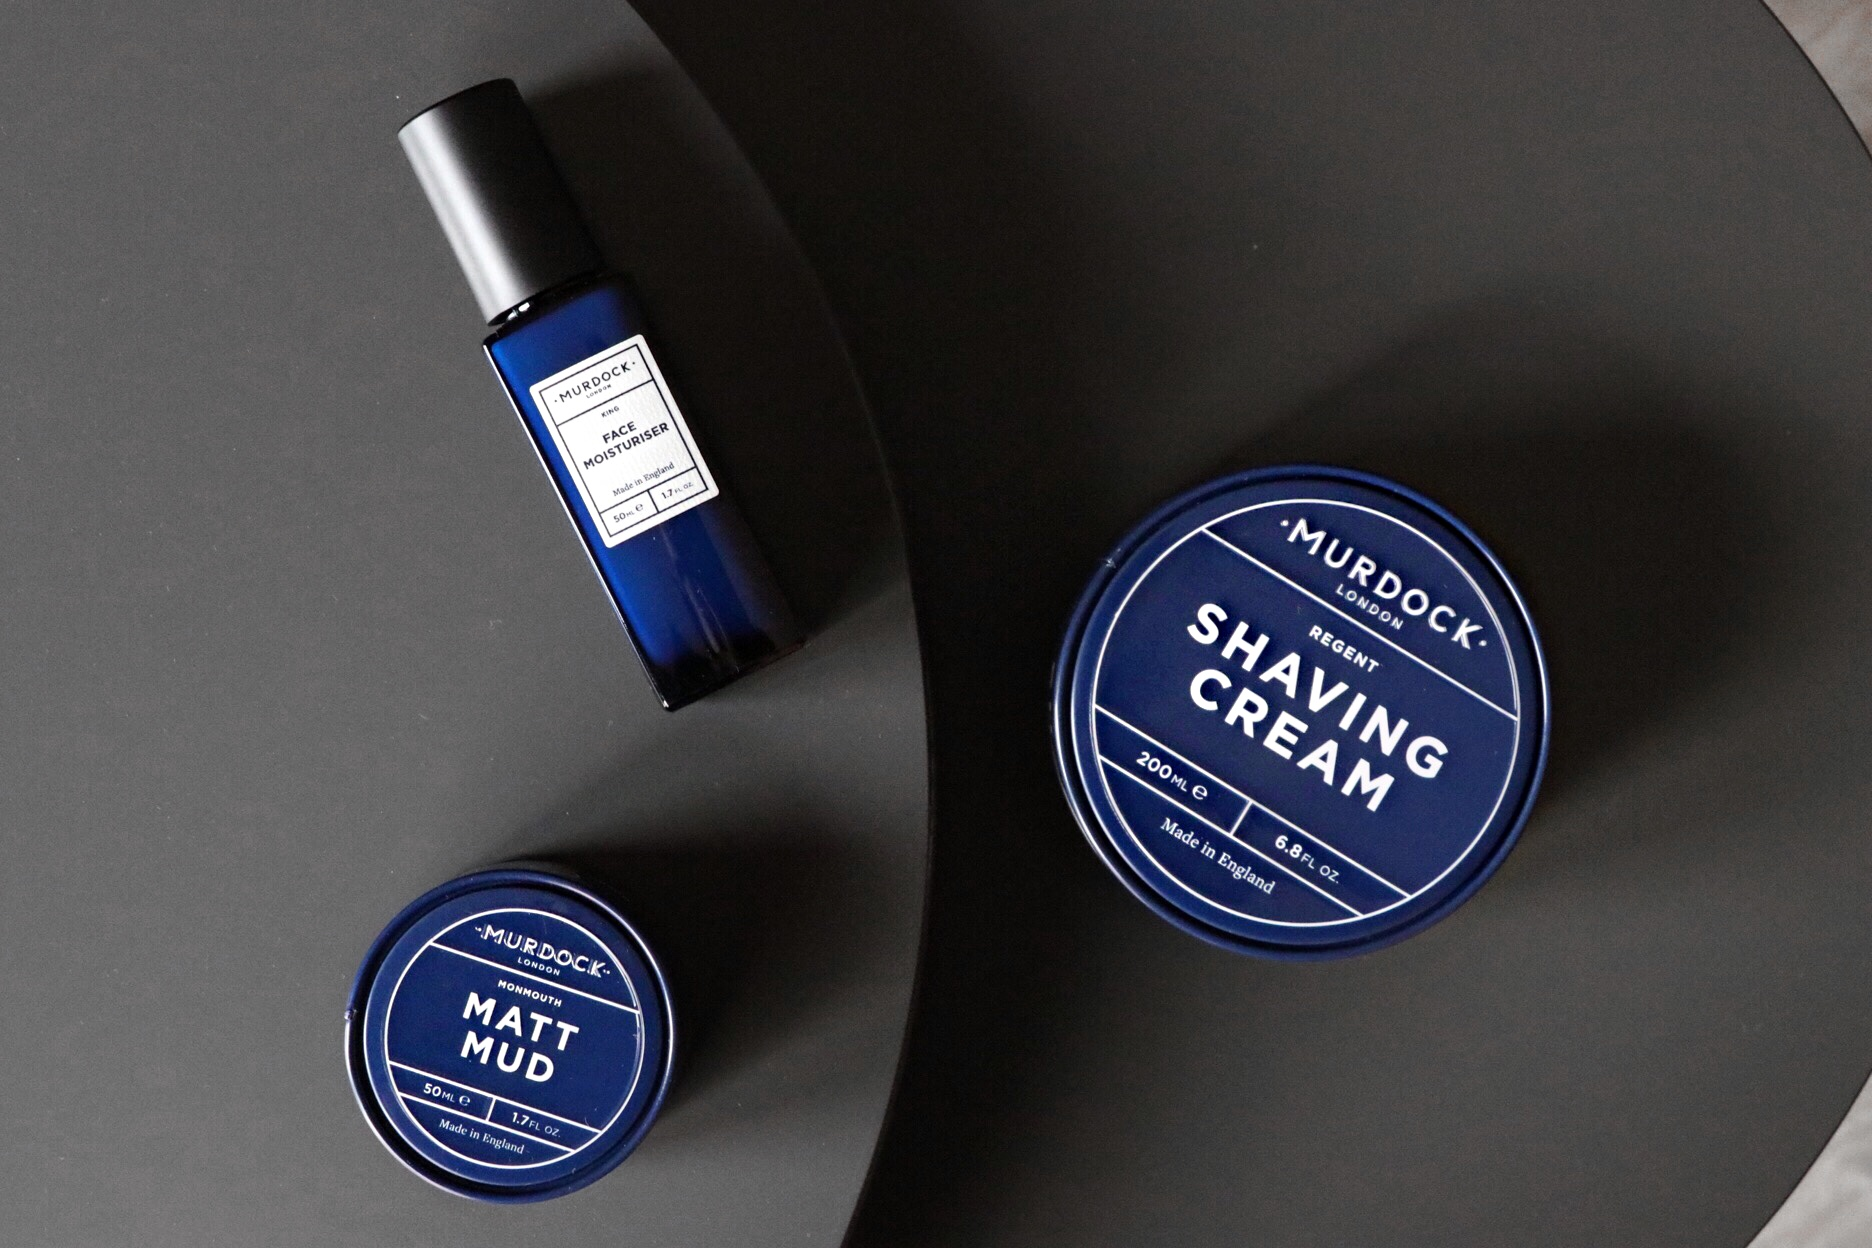 murdock London grooming